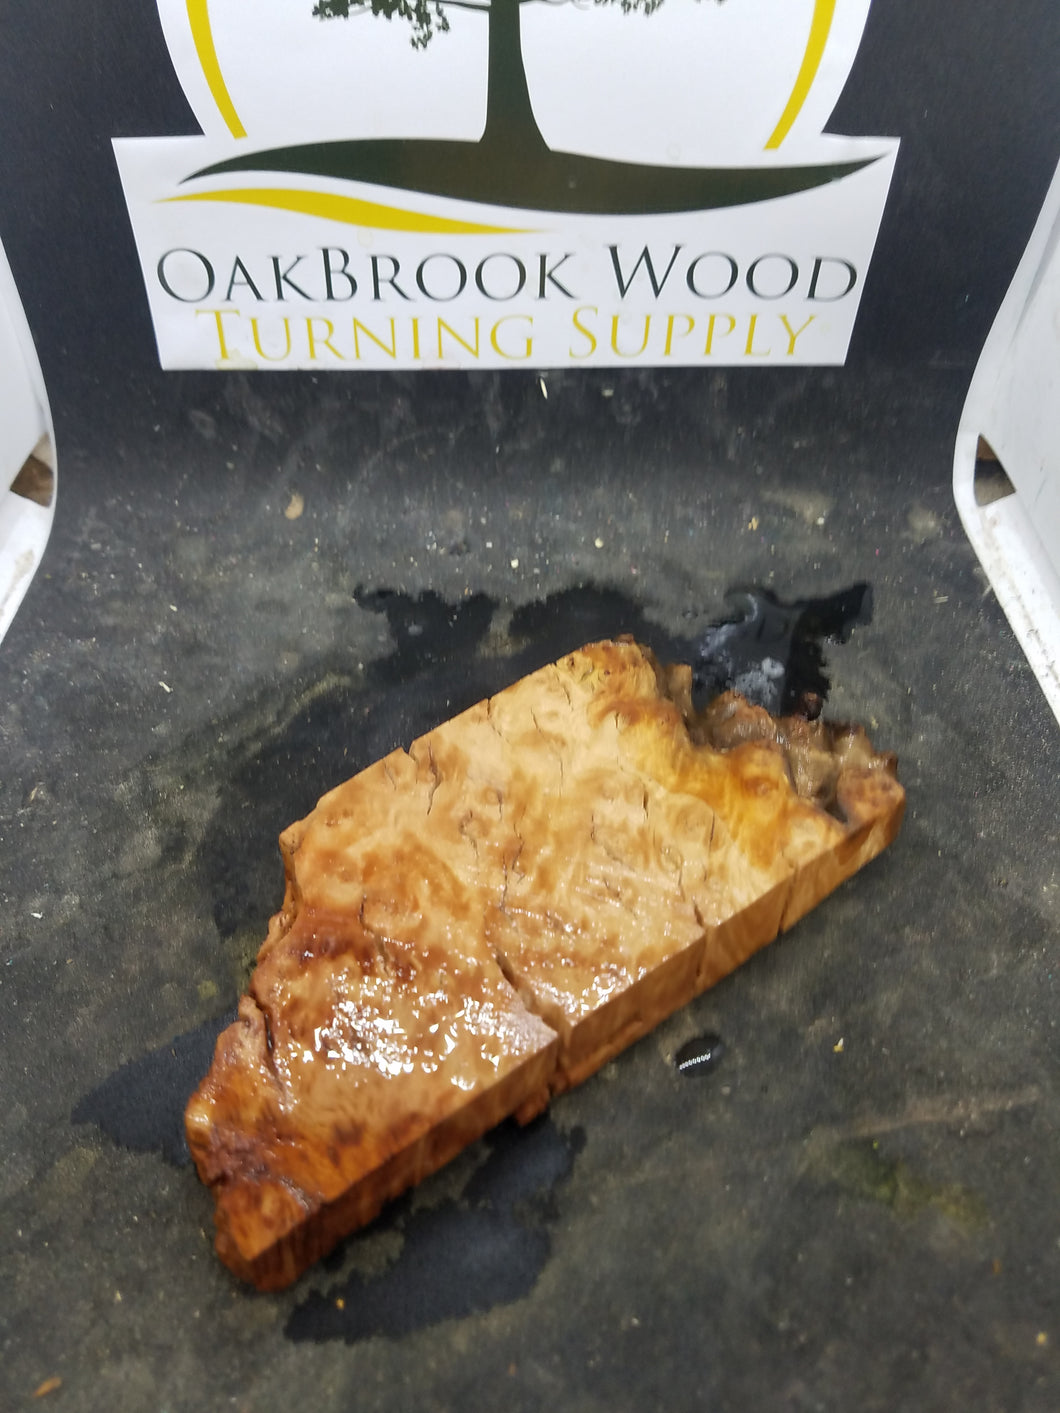 Casting eucalyptus burl - Oakbrook Wood Turning Supply